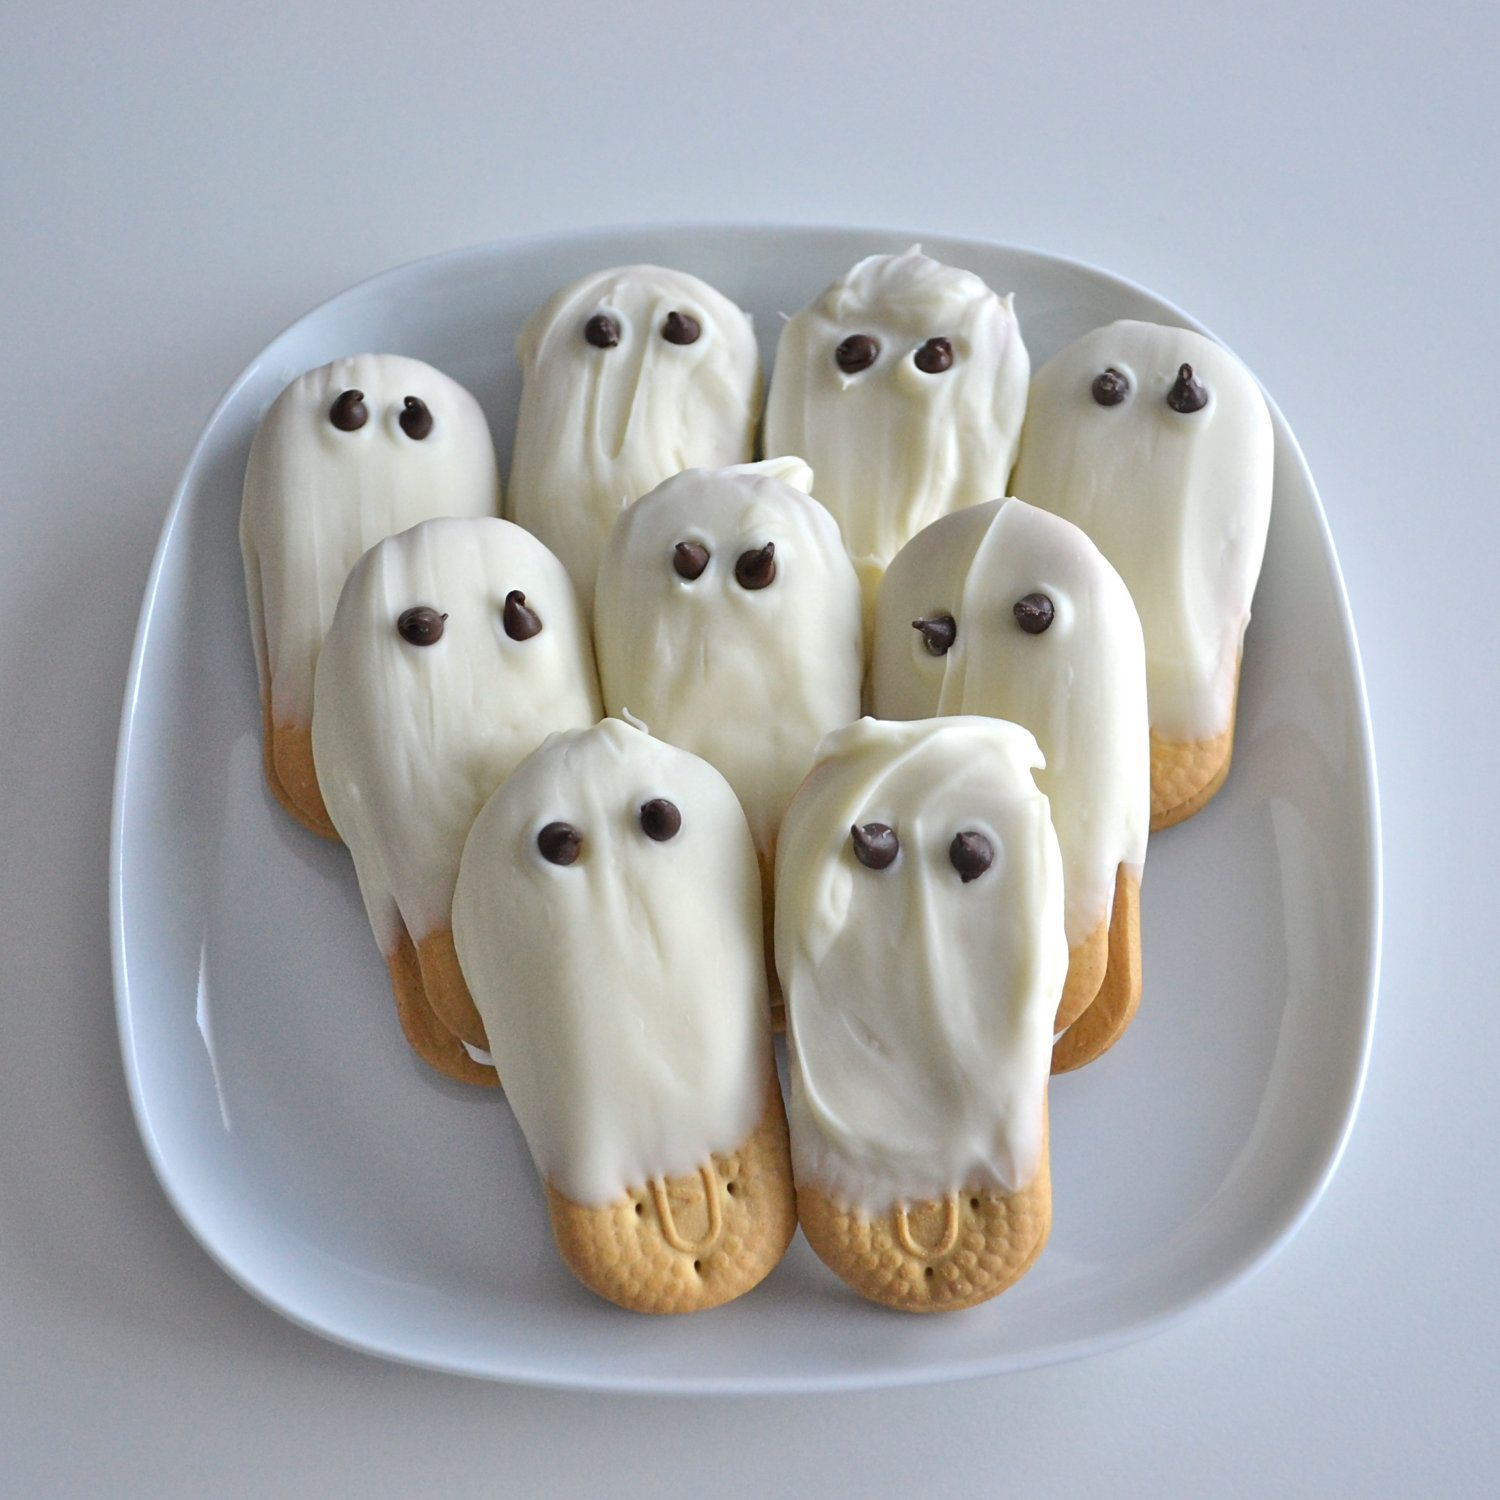 French Vanilla White Chocolate Covered Cookie Ghosts with Chocolate Chip Eyes